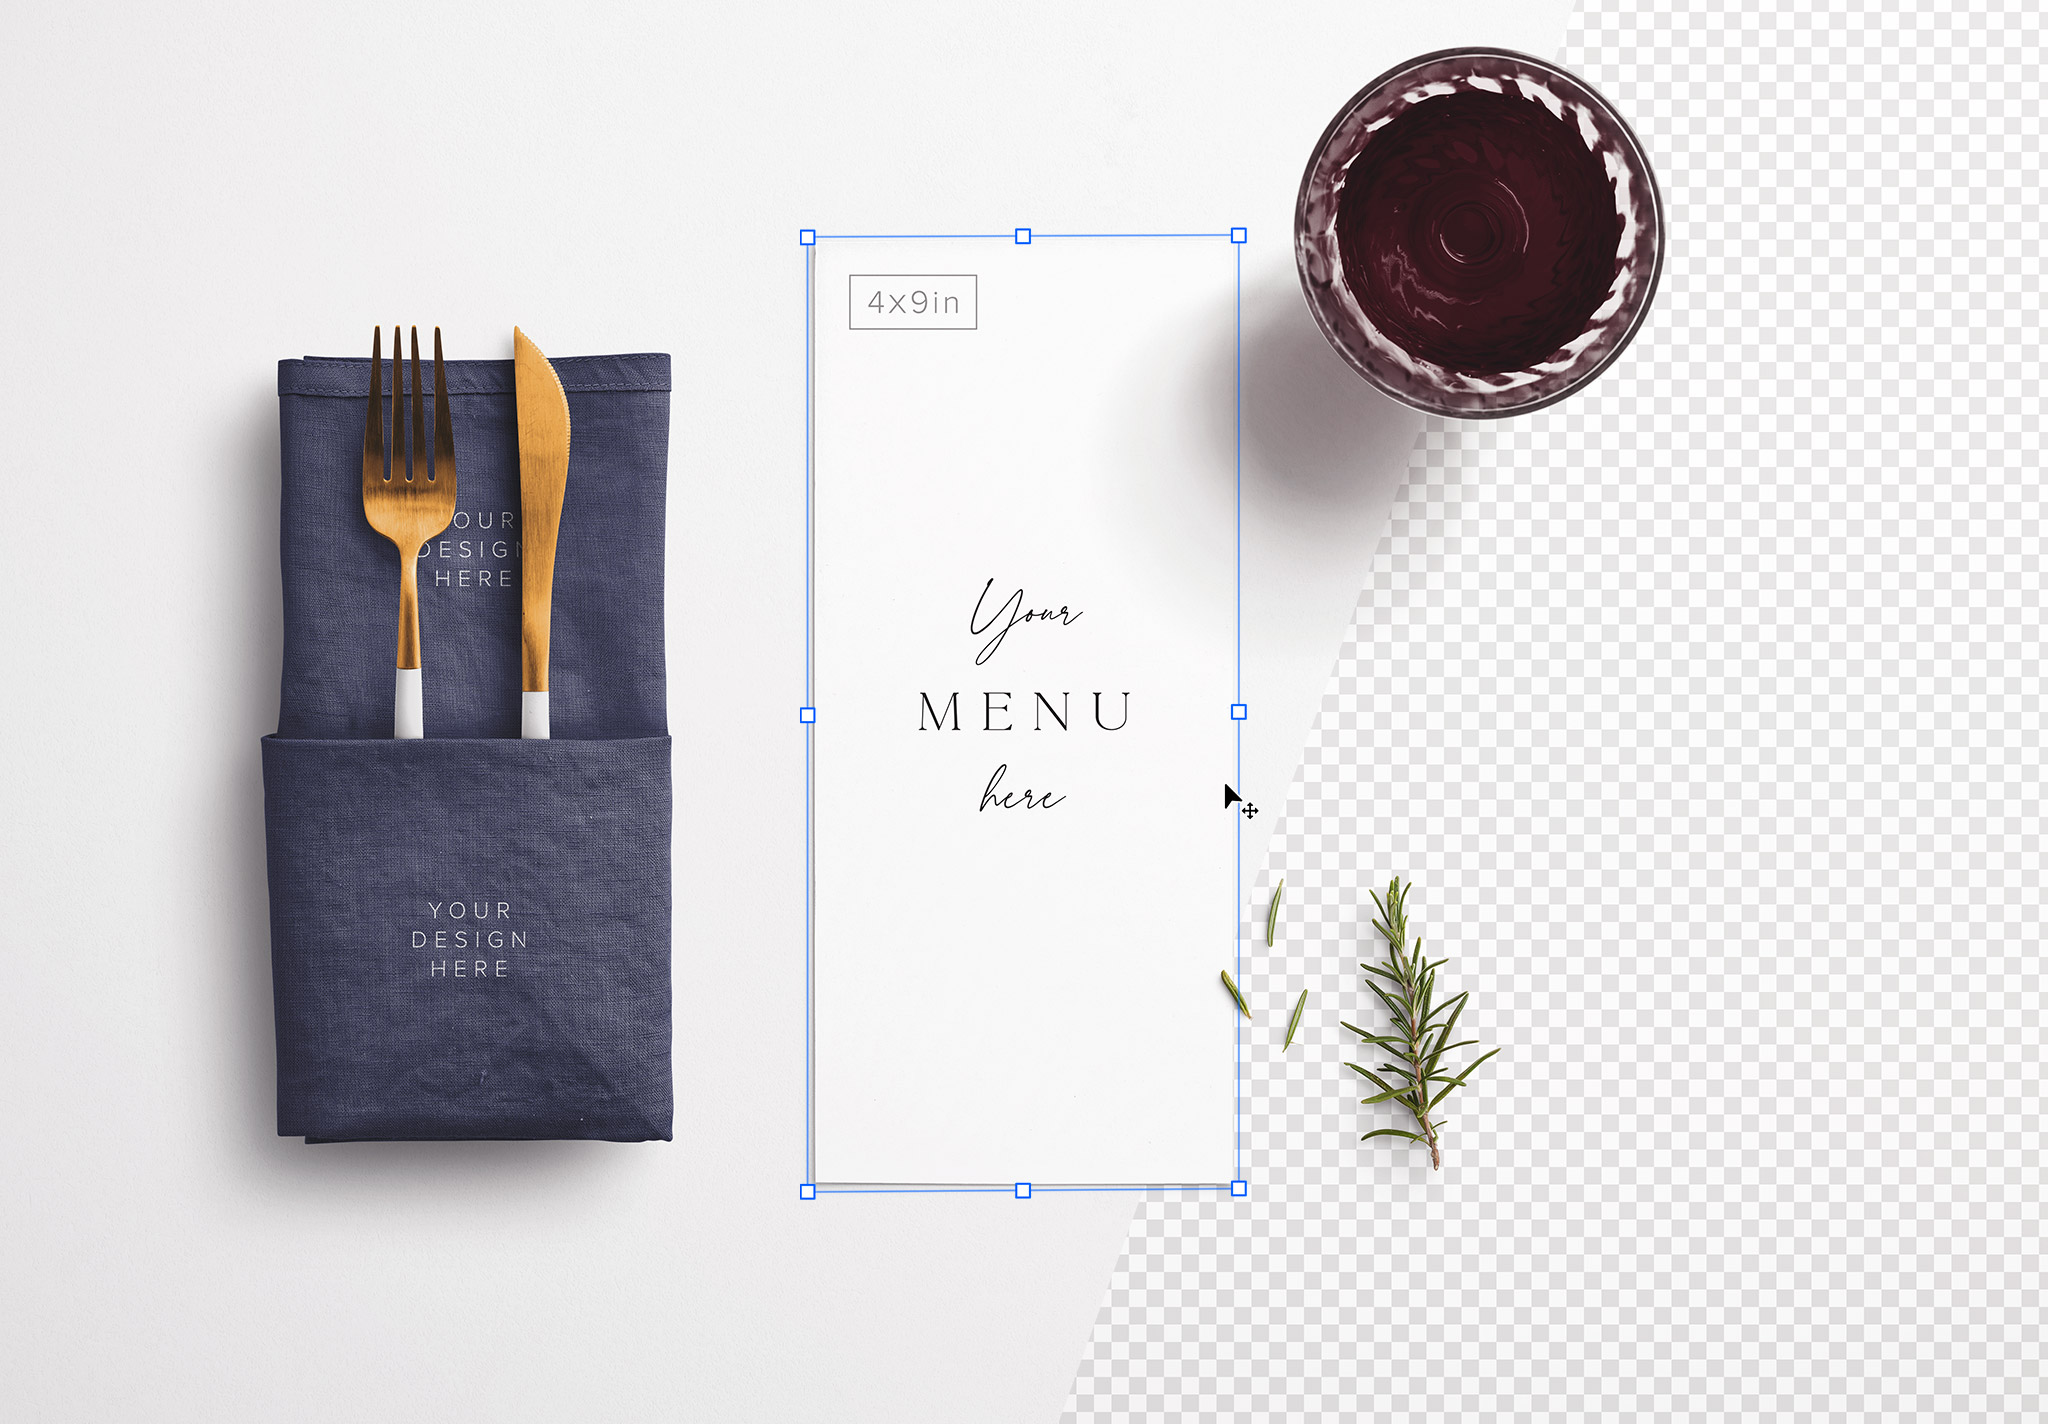 Table 4x9in Menu with Cutleries Napkin Drink and Herbs image01